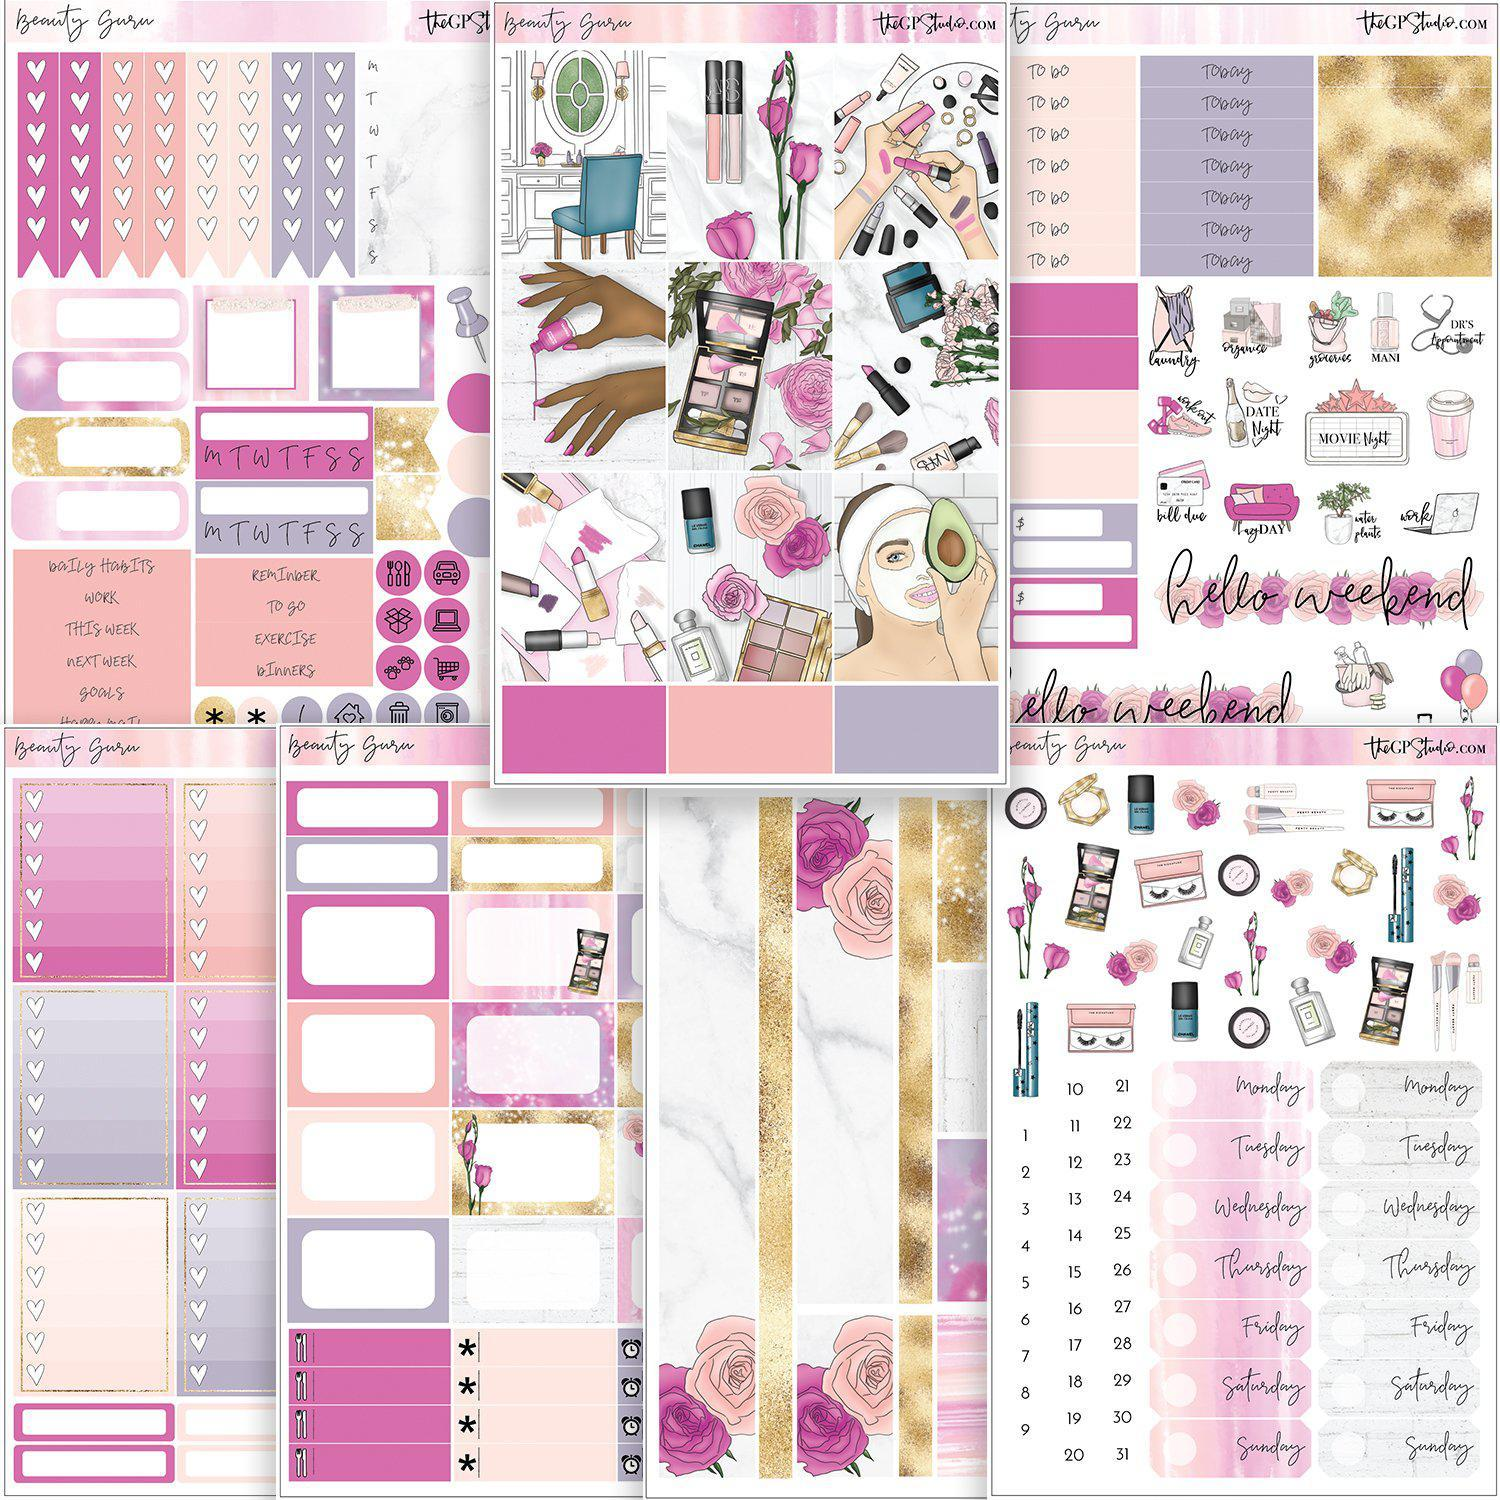 BEAUTY GURU Planner Sticker Kit-The GP Studio